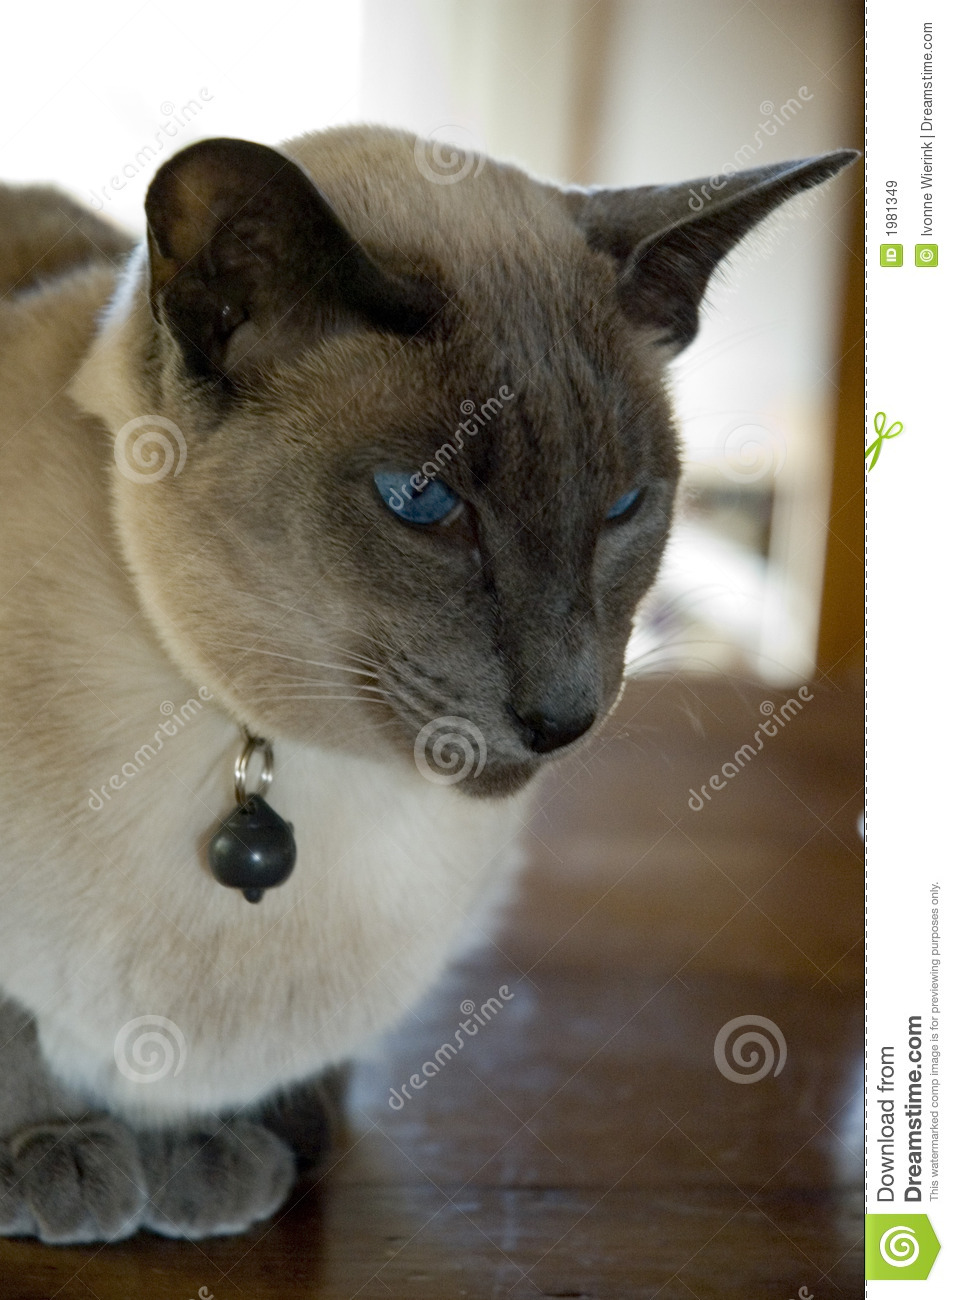 Blue point siamese cat stock image. Image of scowling ...